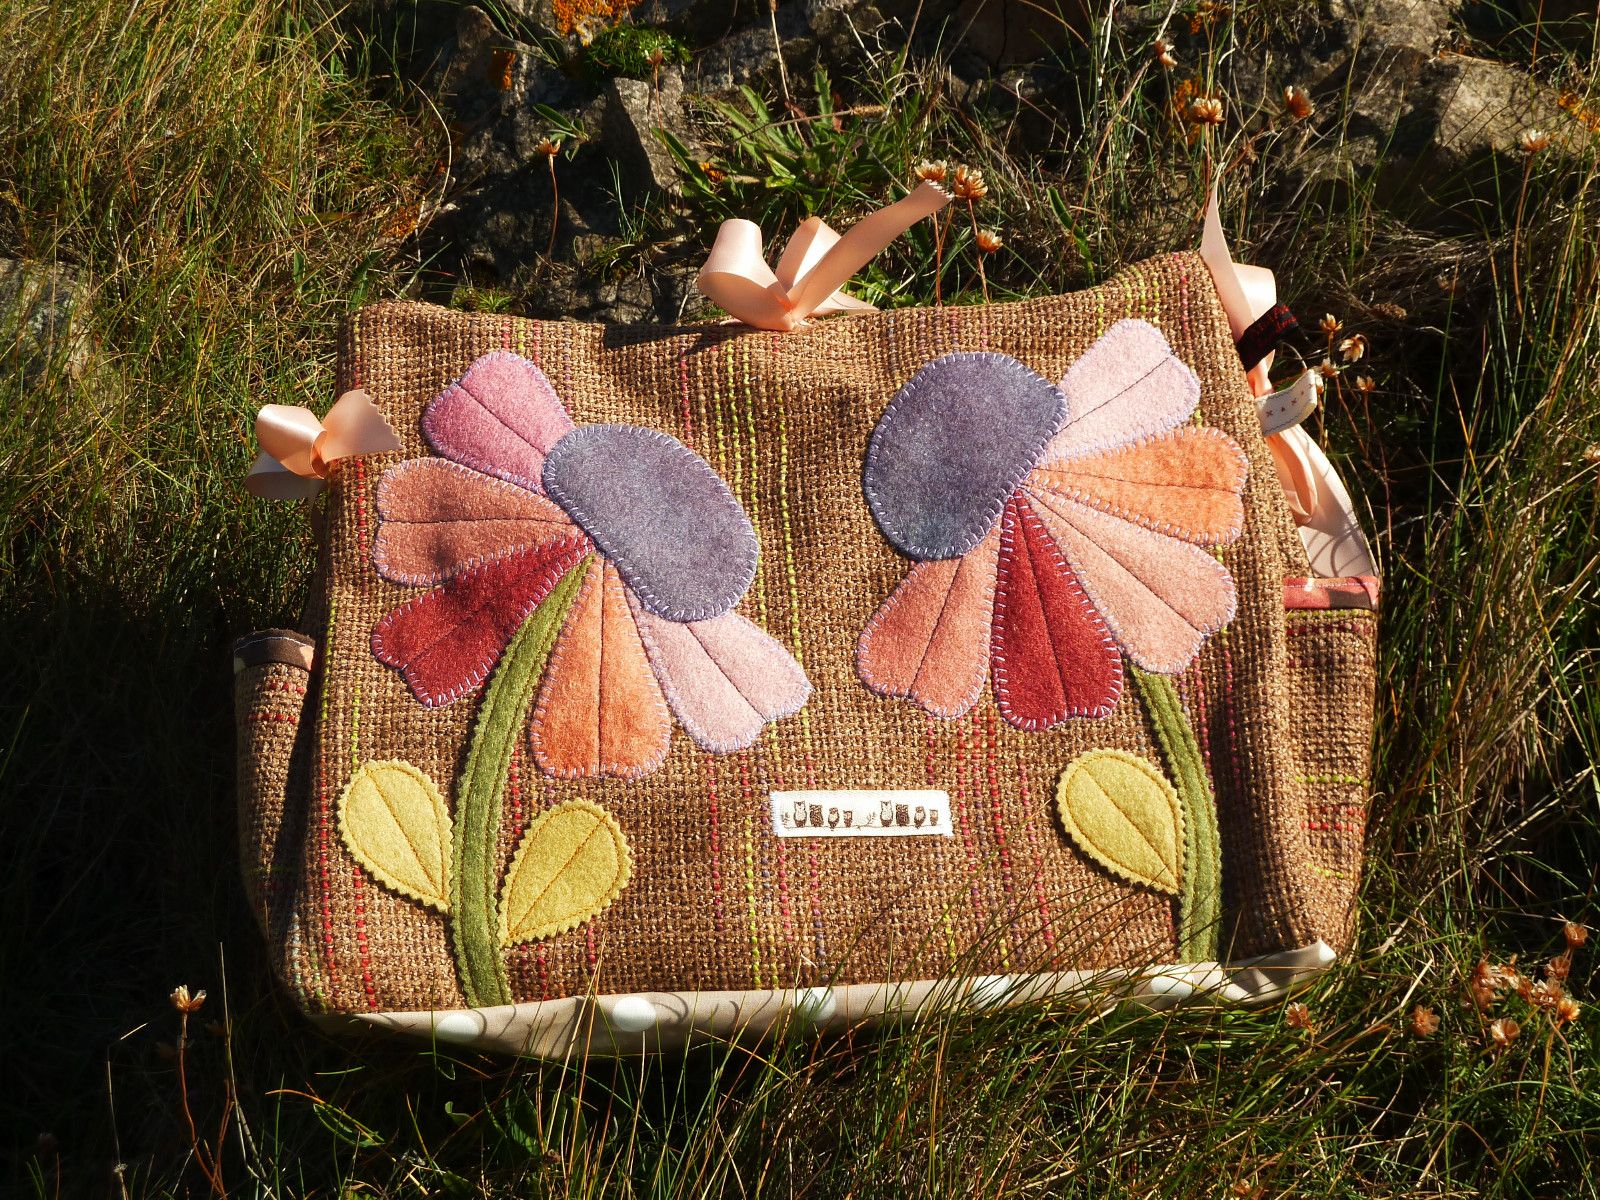 Wool applique bag bags bags and more bags pinterest wool wool applique bag publicscrutiny Image collections